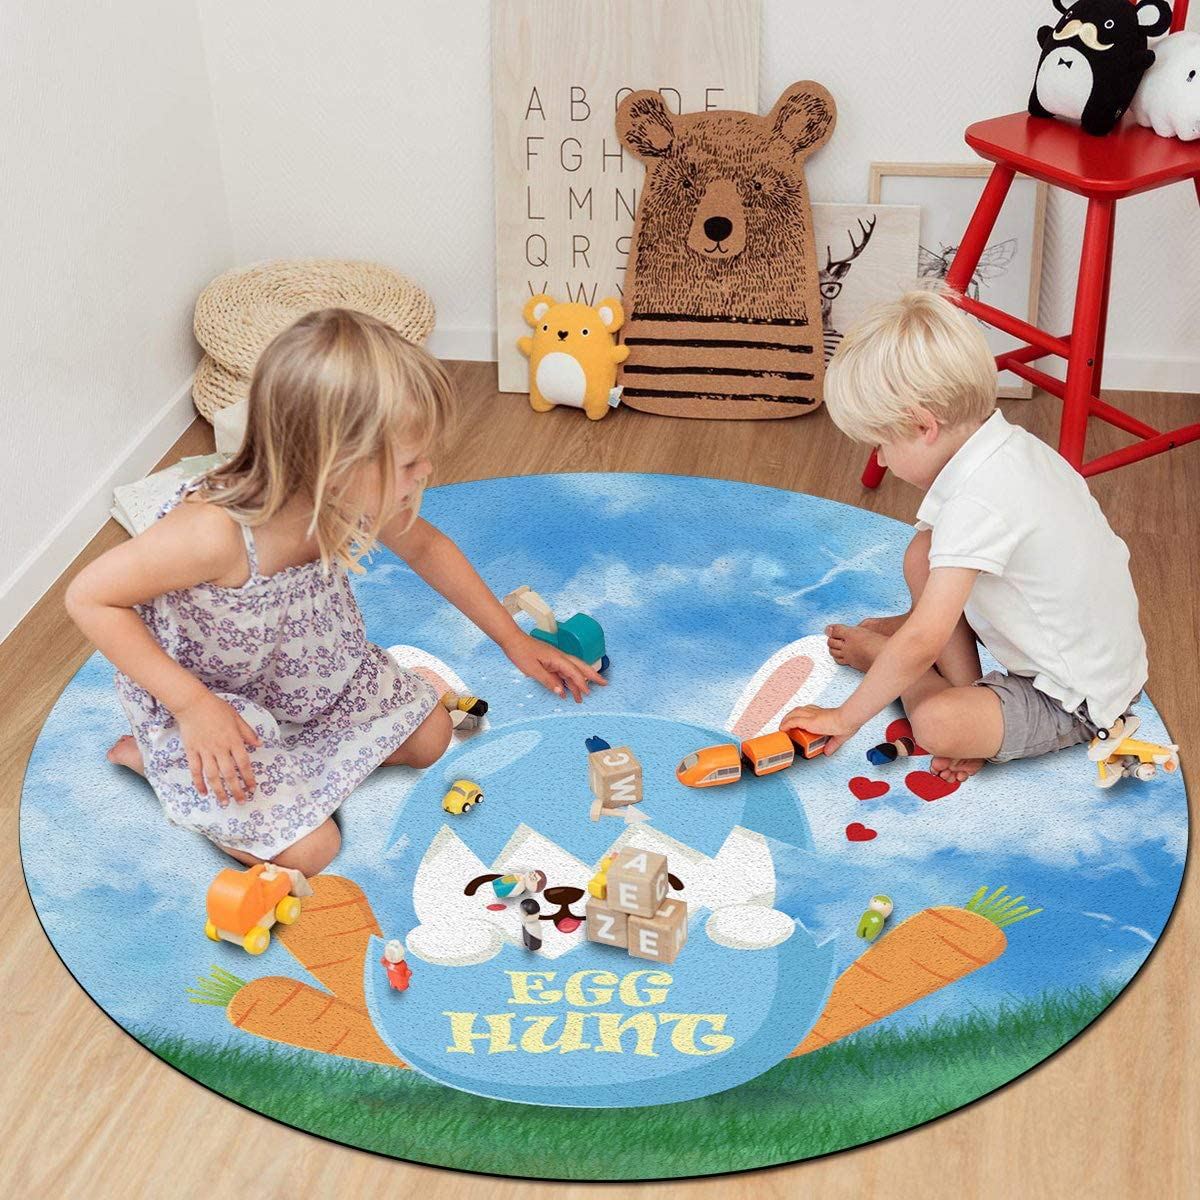 Soft Round Area Rugs for Princess New product type Cheap SALE Start Prince D 4 Play Castle ft Tent